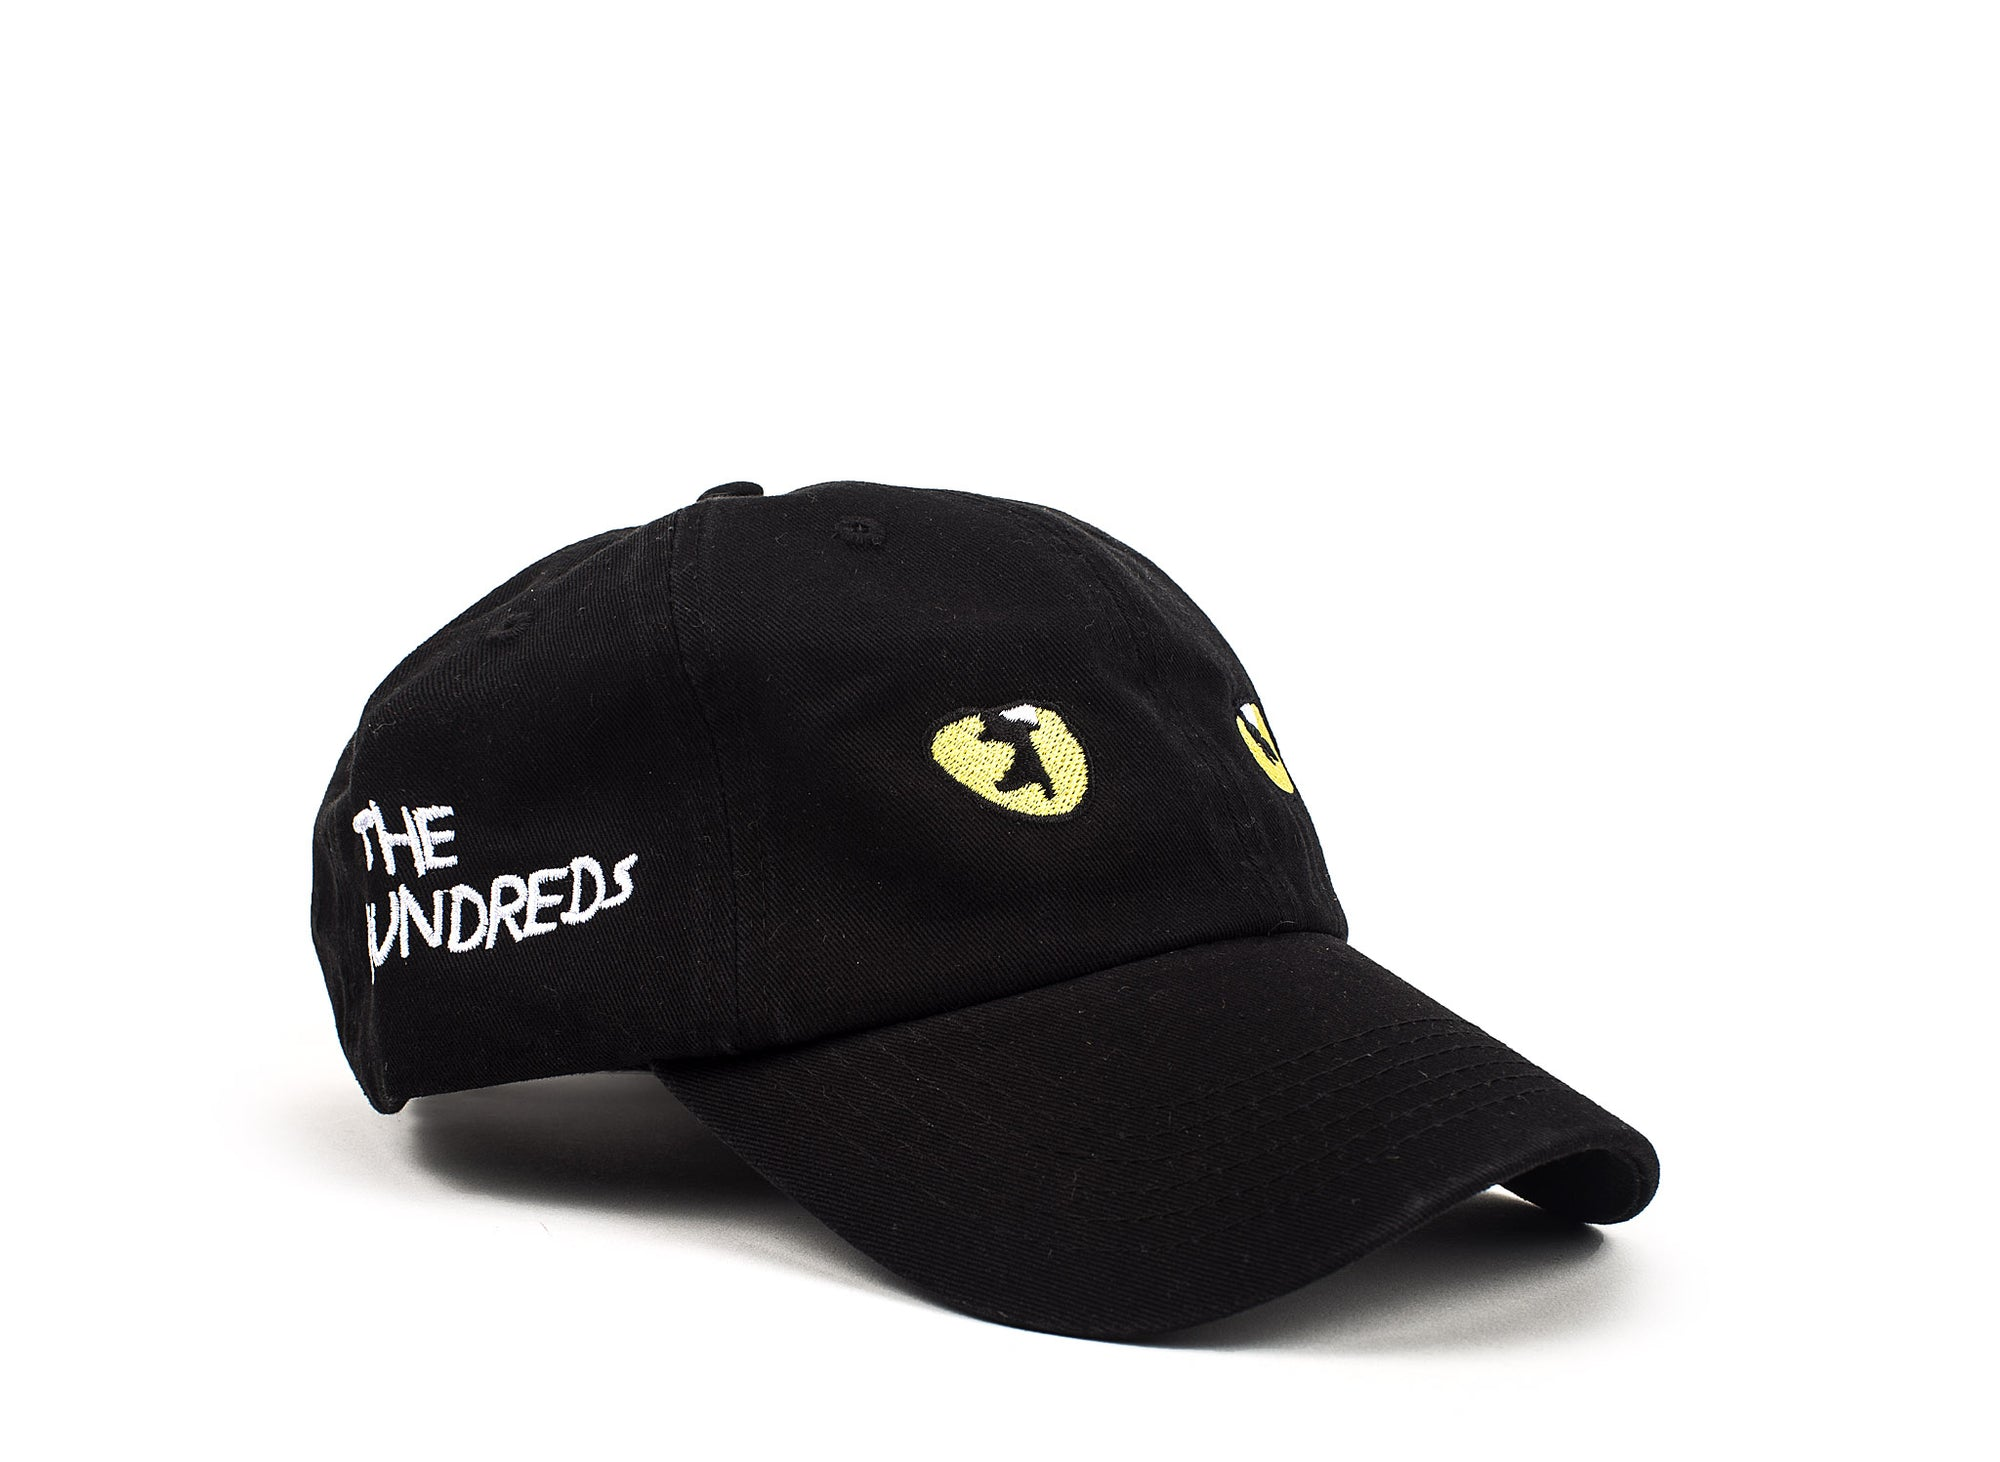 THE HUNDREDS x ANDREW LLOYD WEBBER CATS DAD HAT